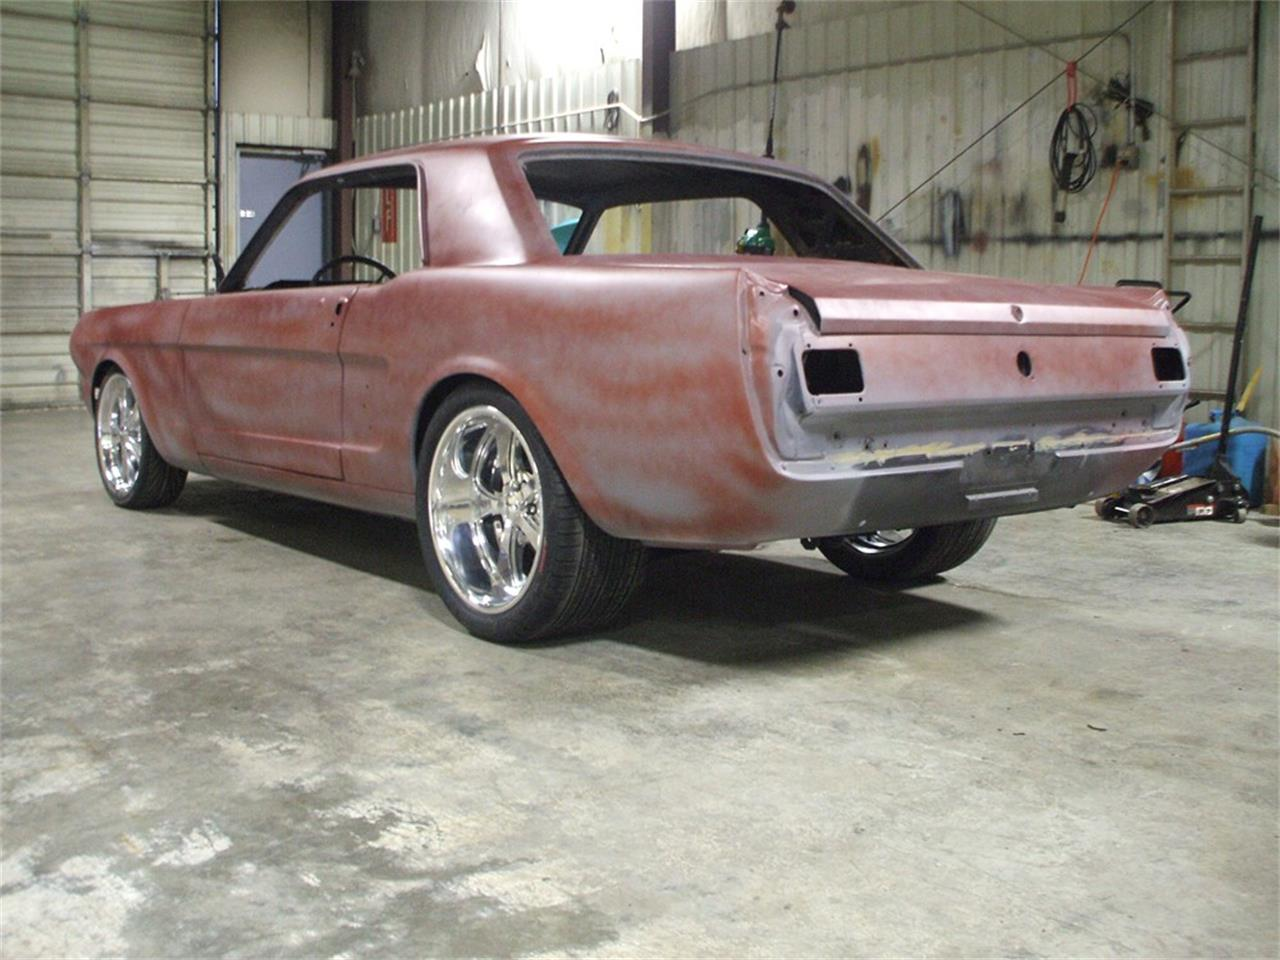 Large Picture of '66 Ford Mustang located in Missouri - $28,000.00 - N2TG